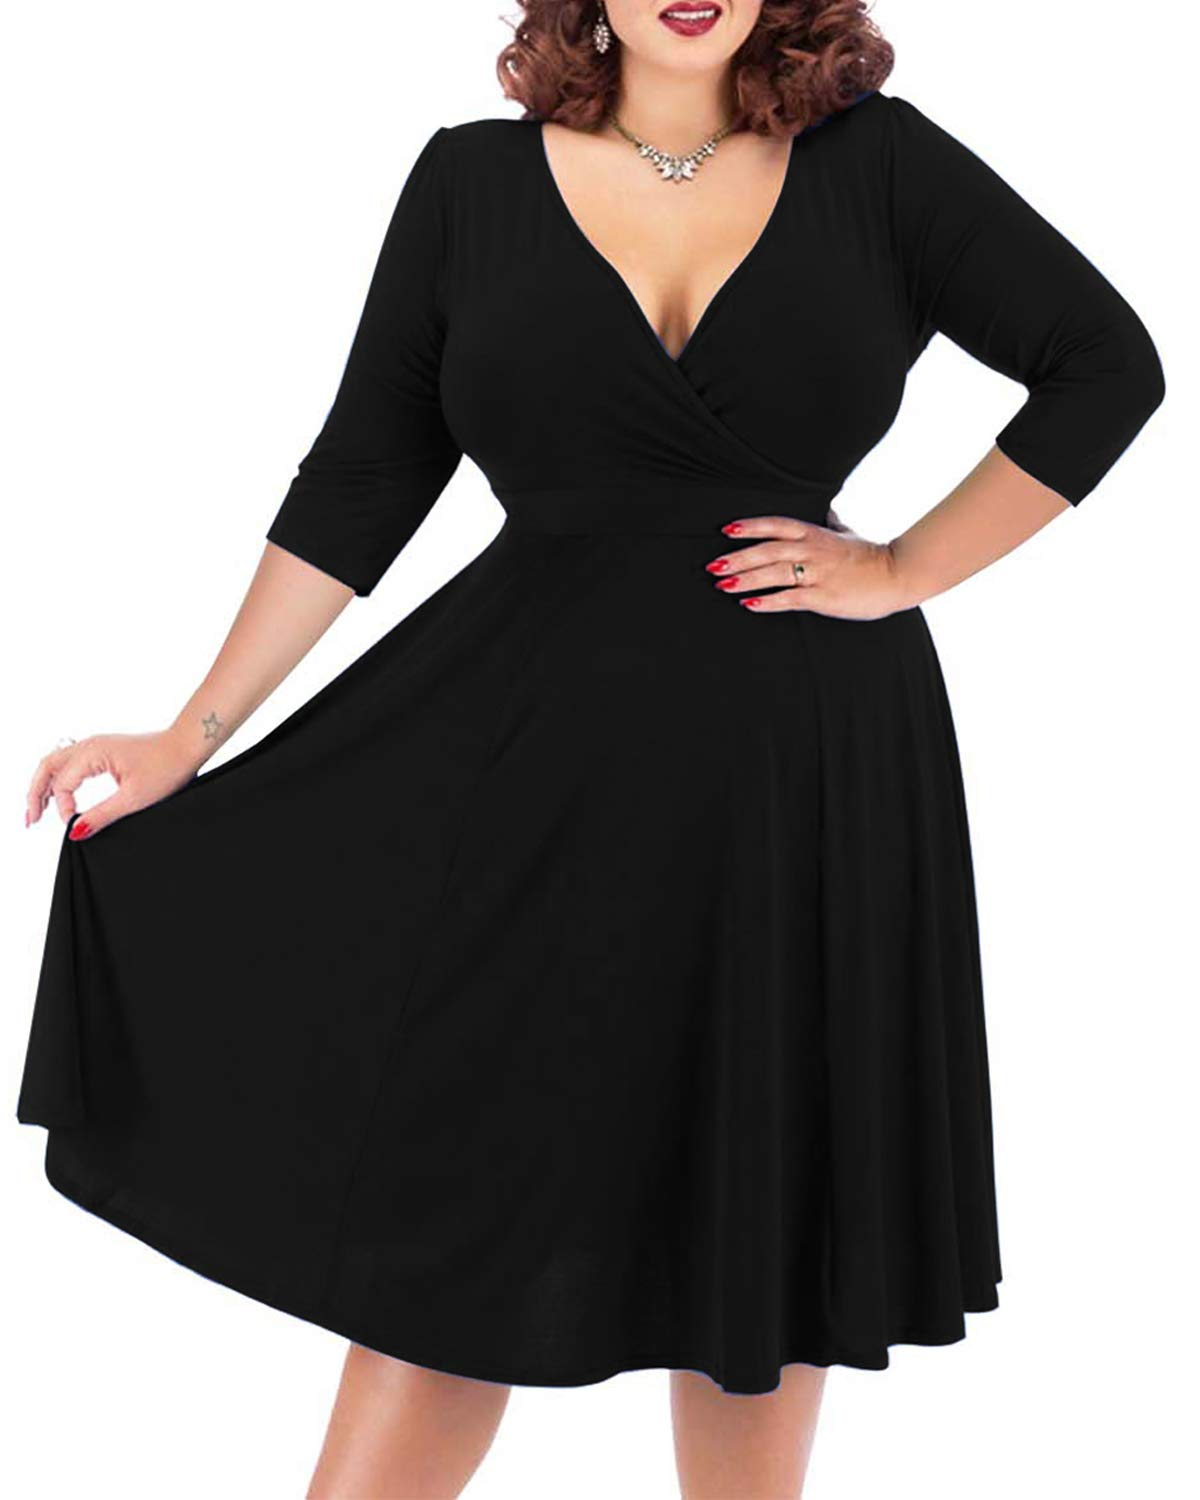 Nemidor Womens Vintage Ruffle Sleeve Party Midi Dress Plus Size Casual Summer Fit and Flare Dress NEM212